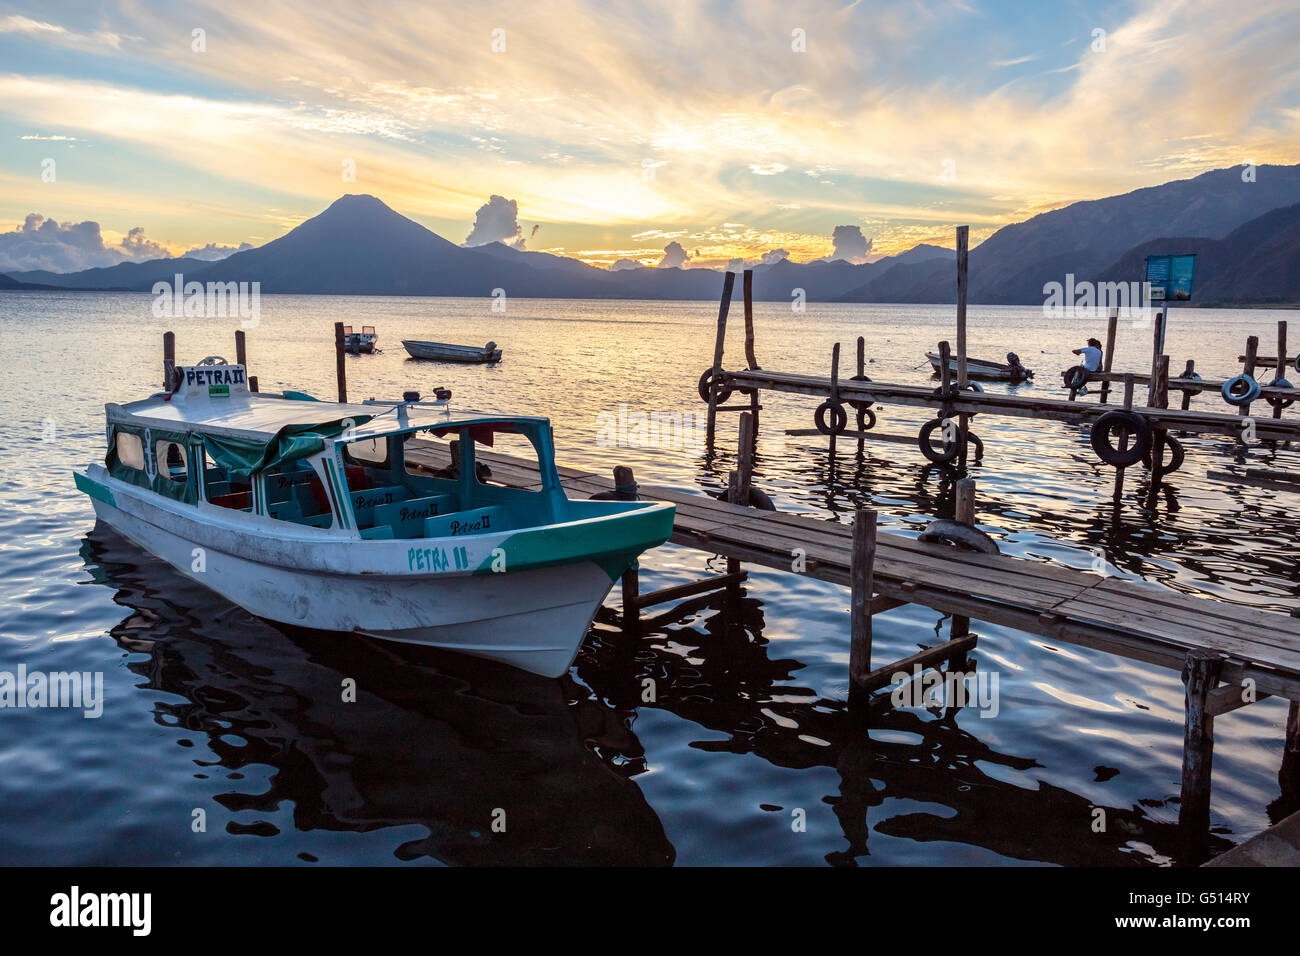 A water taxi sits docked in Panajachel for the evening as the sun sets over Lago de Atitlan, a volcanic crater lake - Stock Image